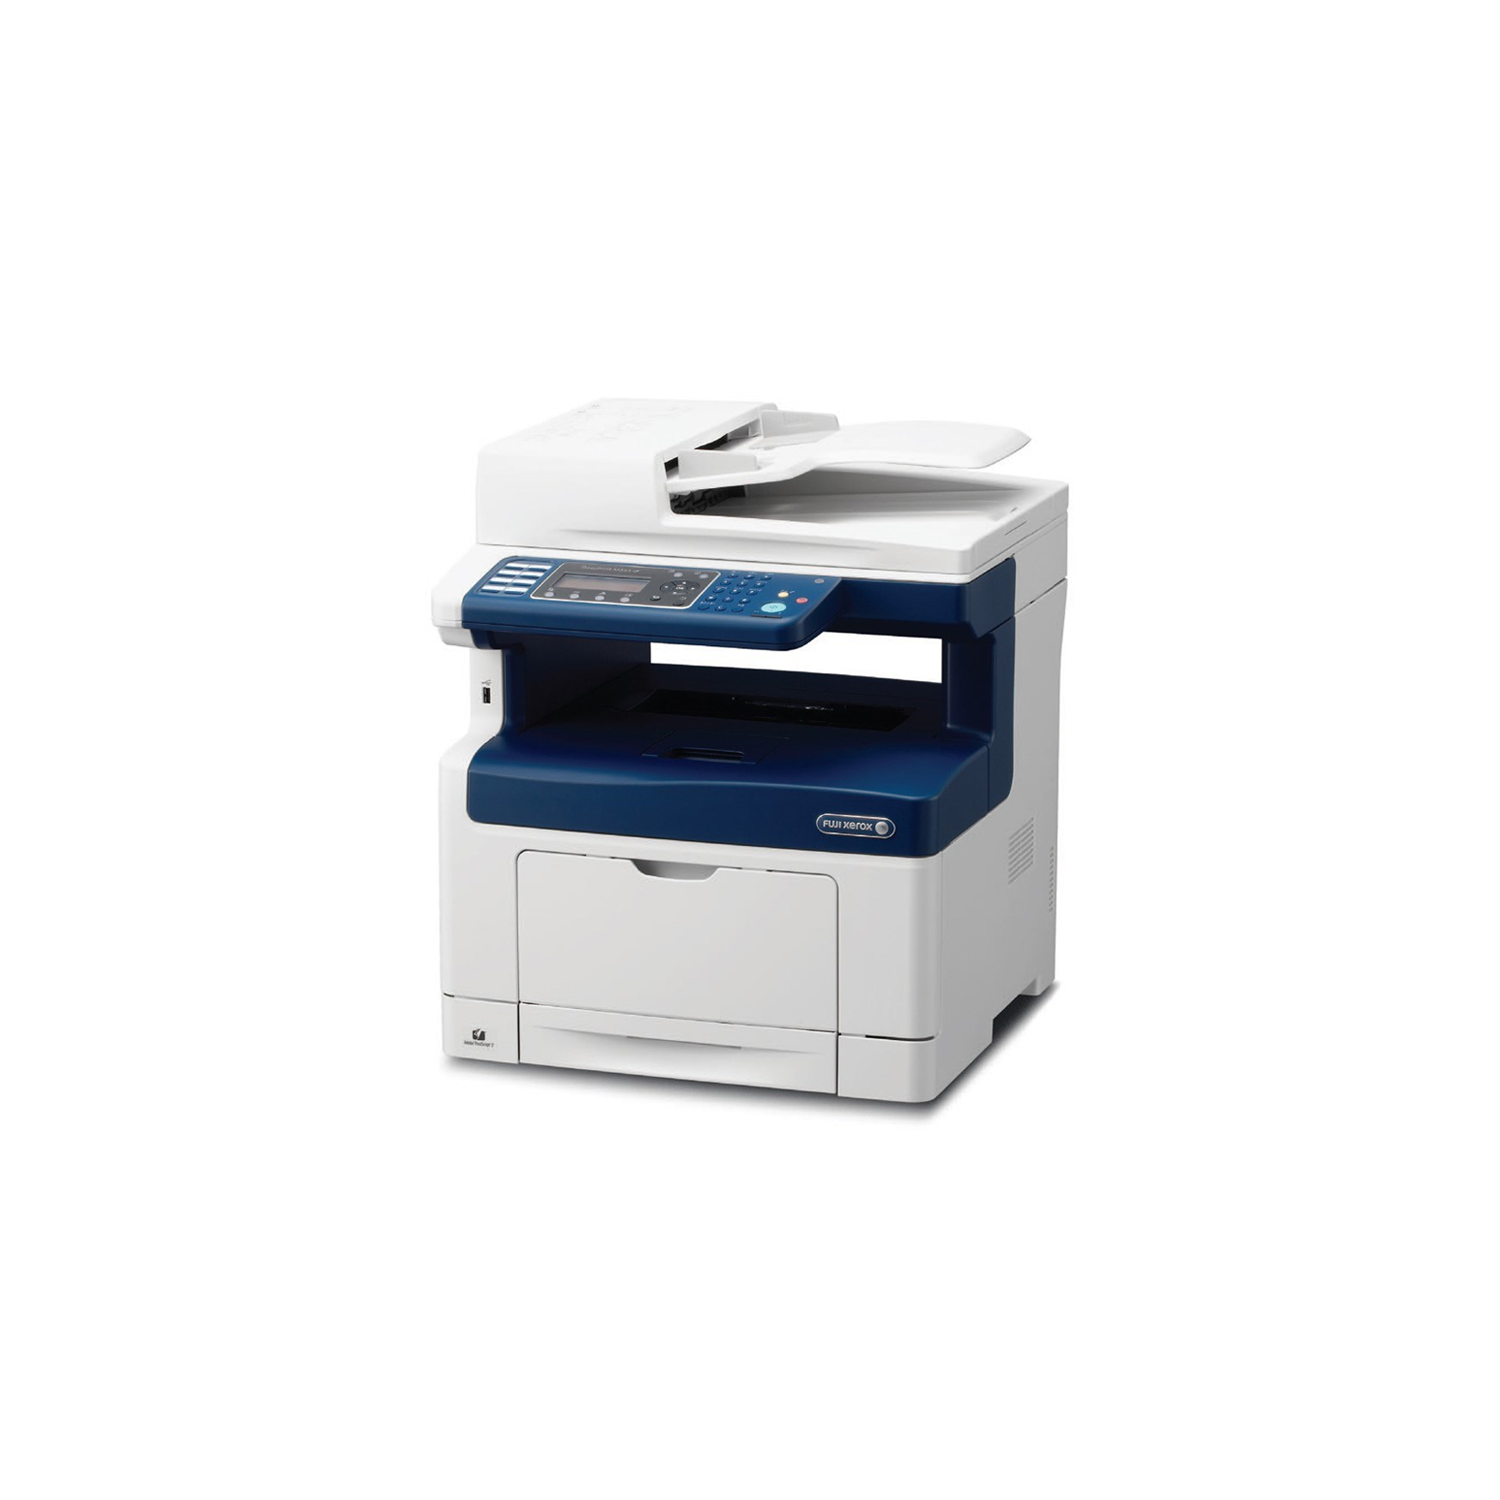 Fuji DocuPrint M355 df Monochrome Multifunction Printer